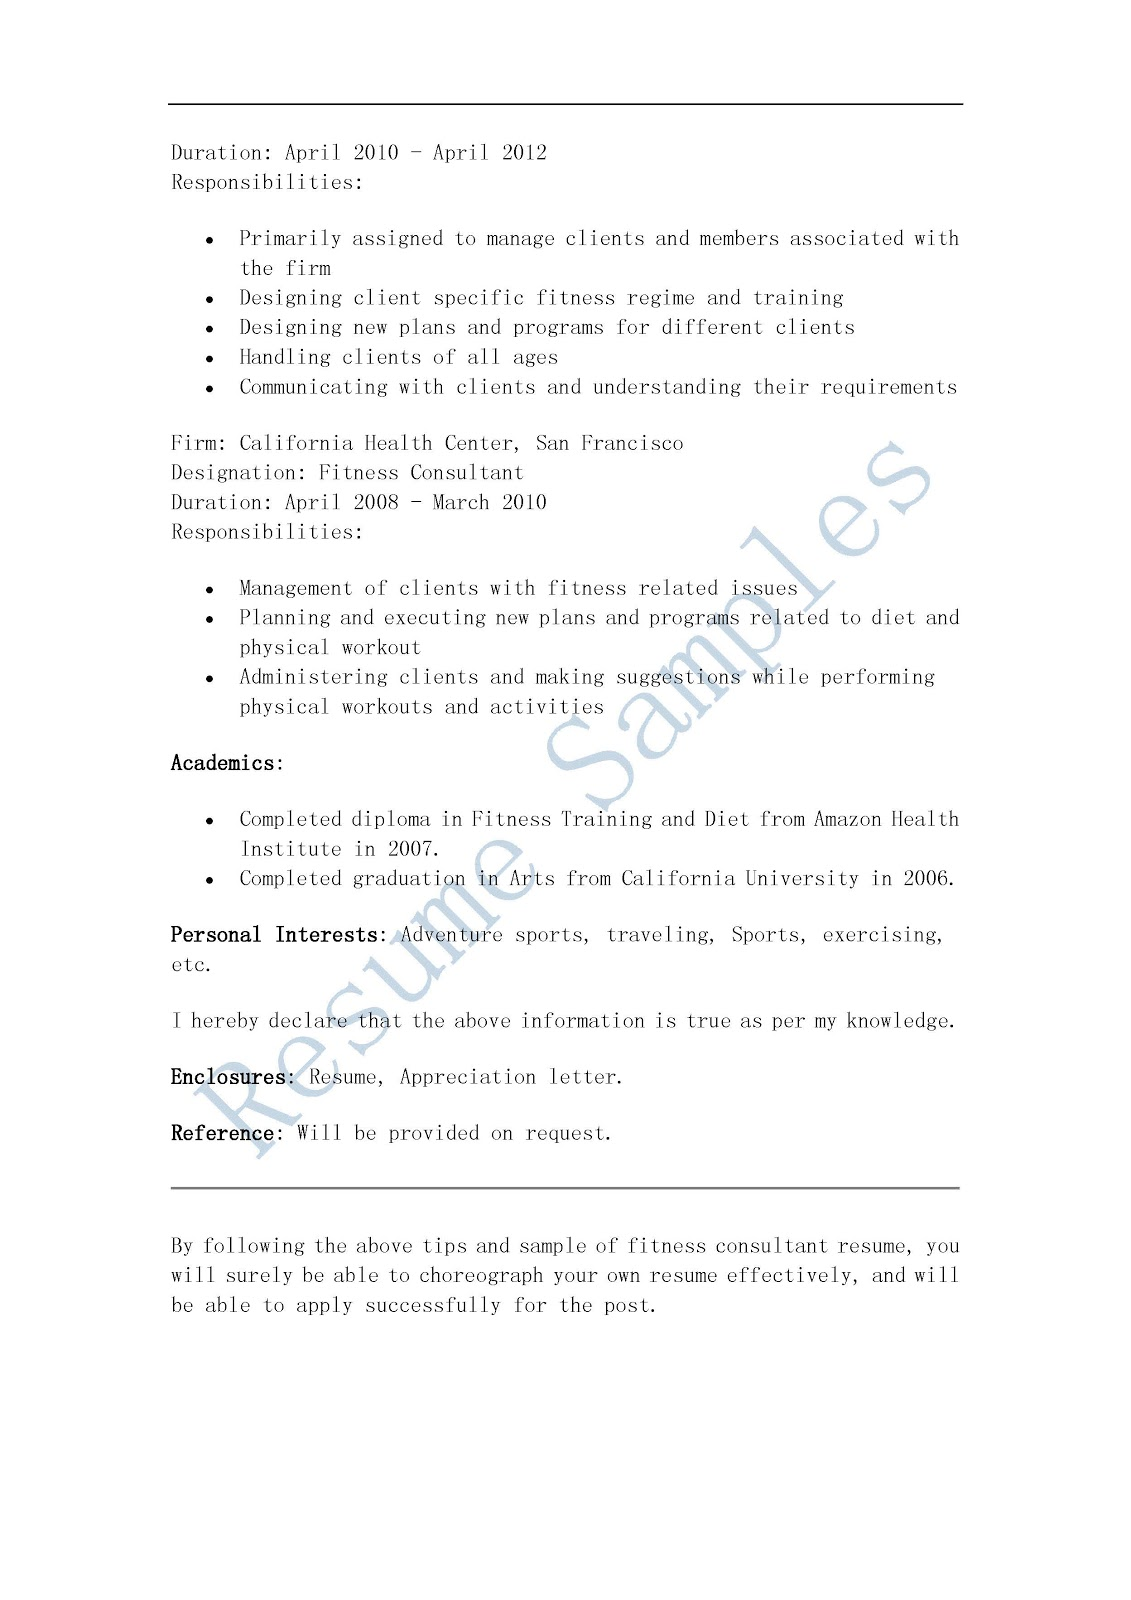 Independent Consultant Resume Template Brand Ambassador Resume. Independent  Consultant Resume Template Brand Ambassador Resume